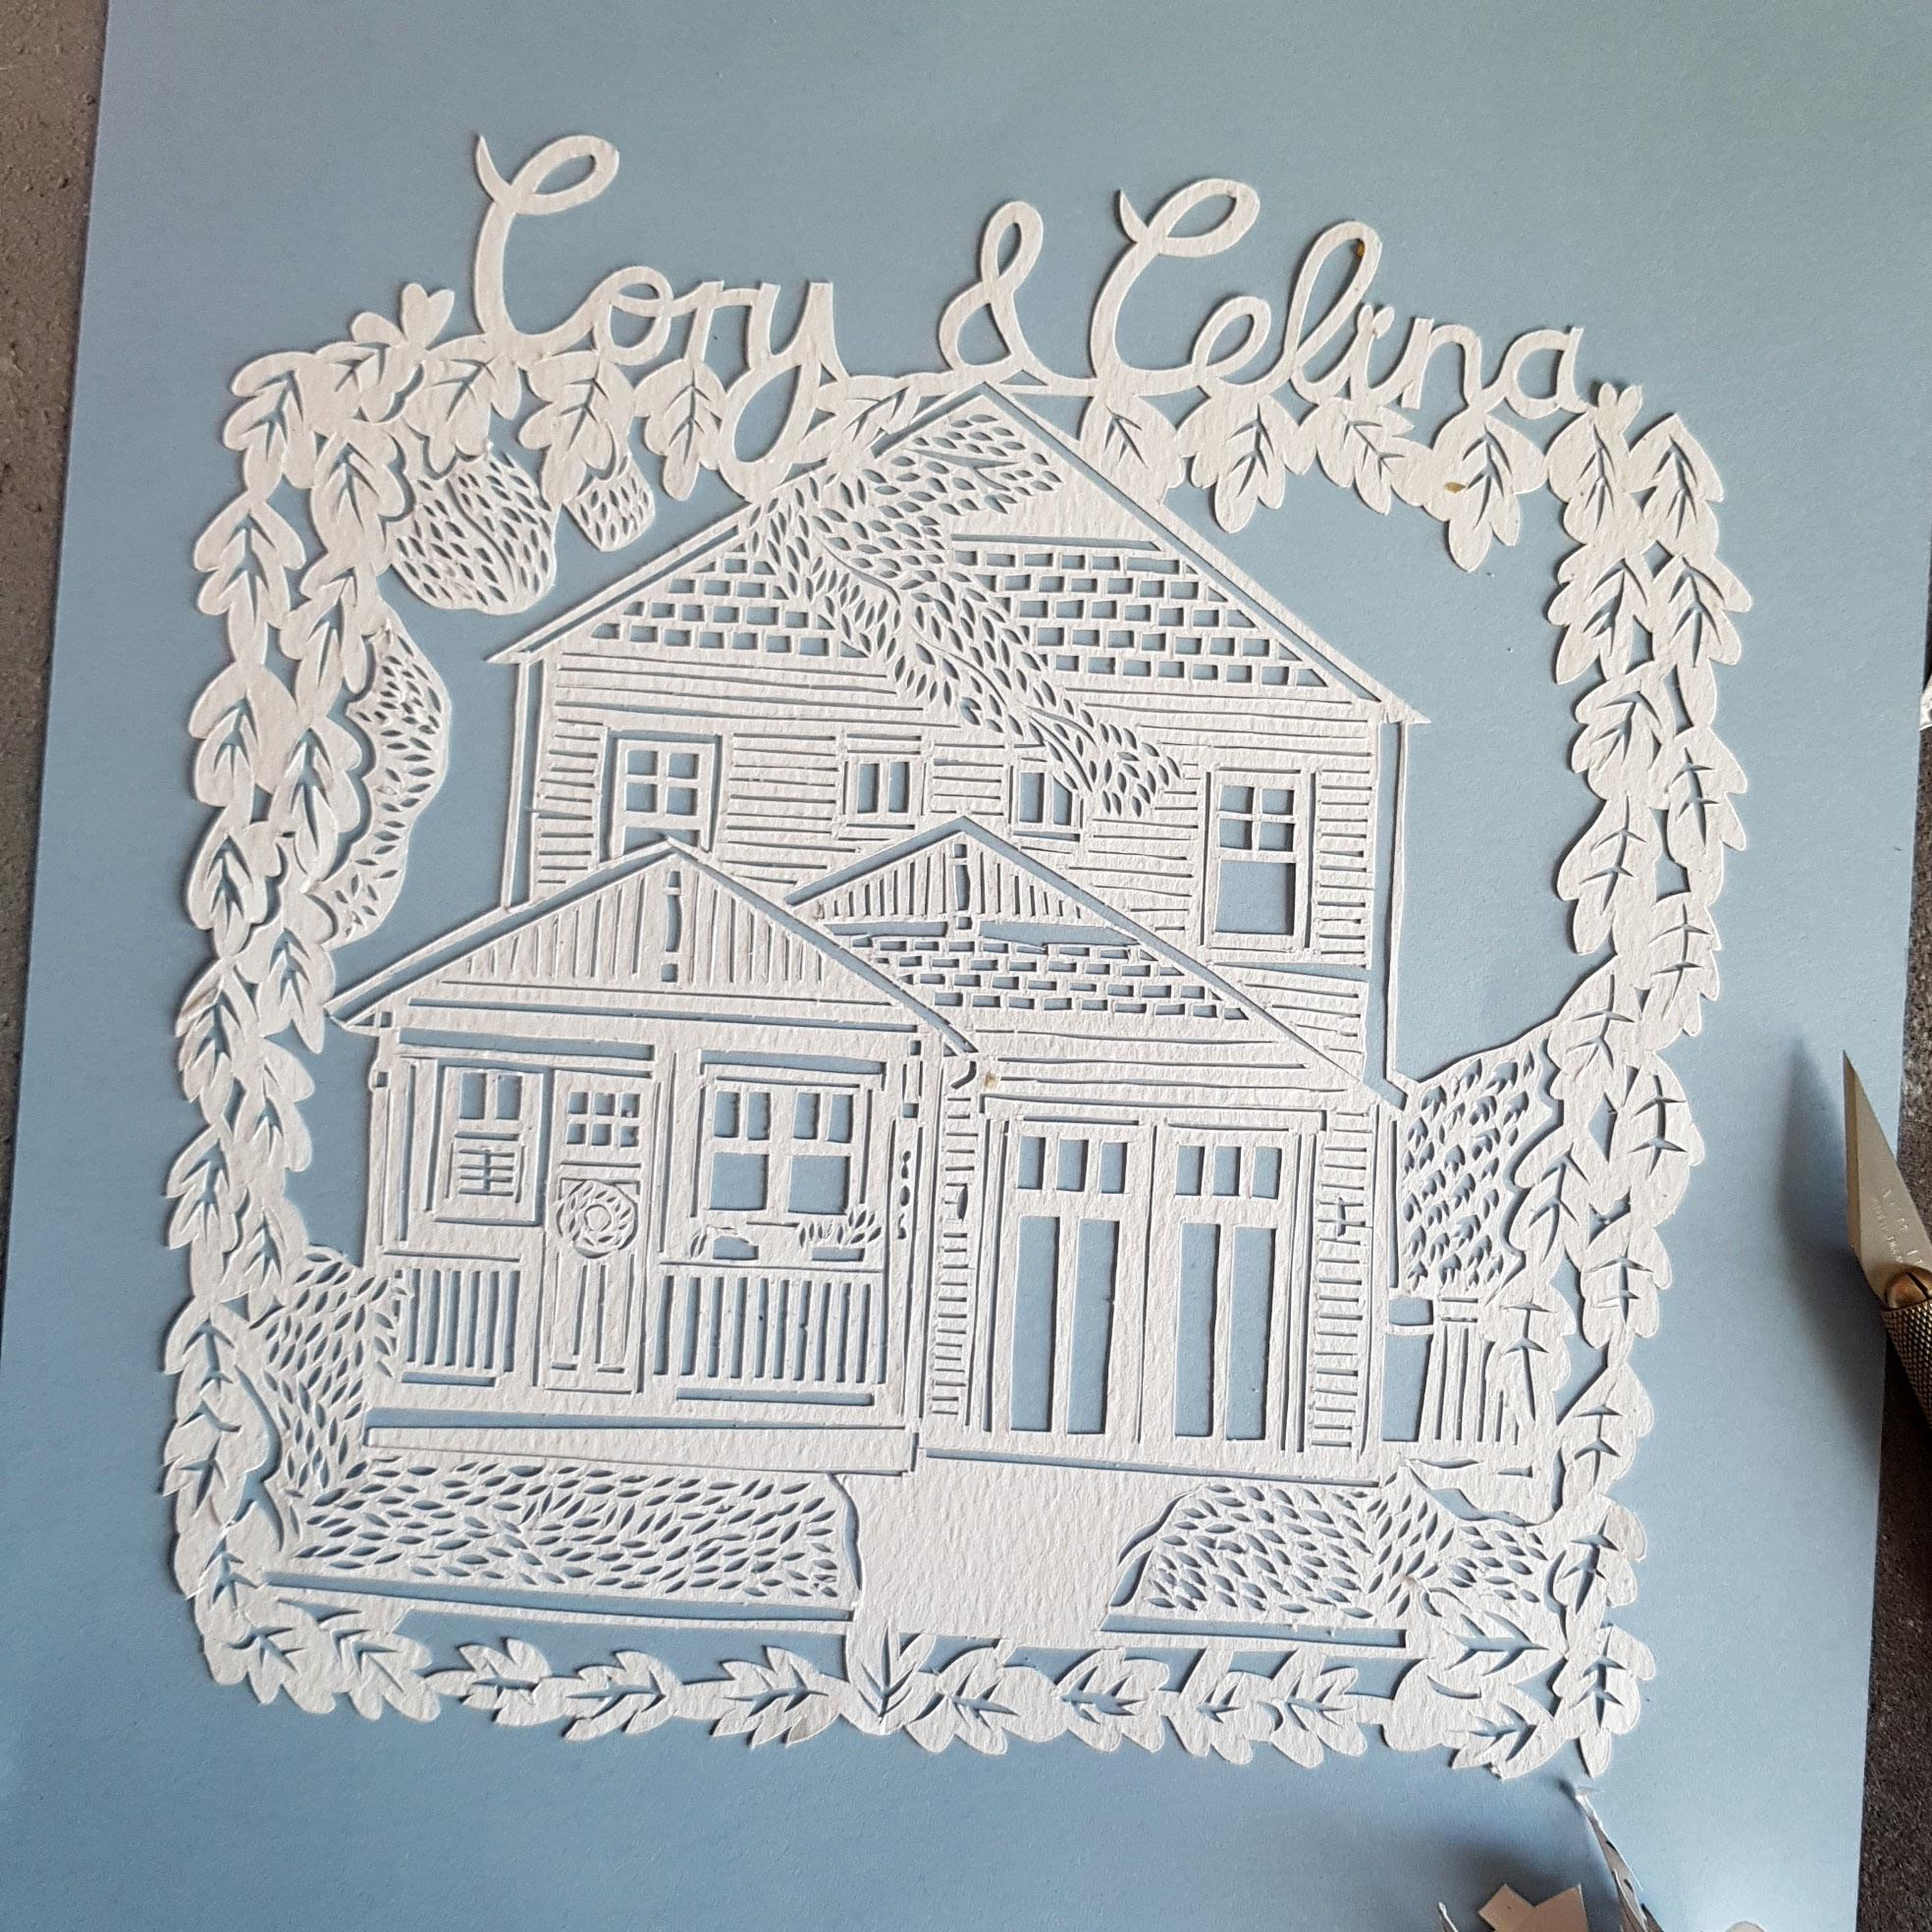 A hand drawn, hand cut paper cut of a house, personalised for a customer.